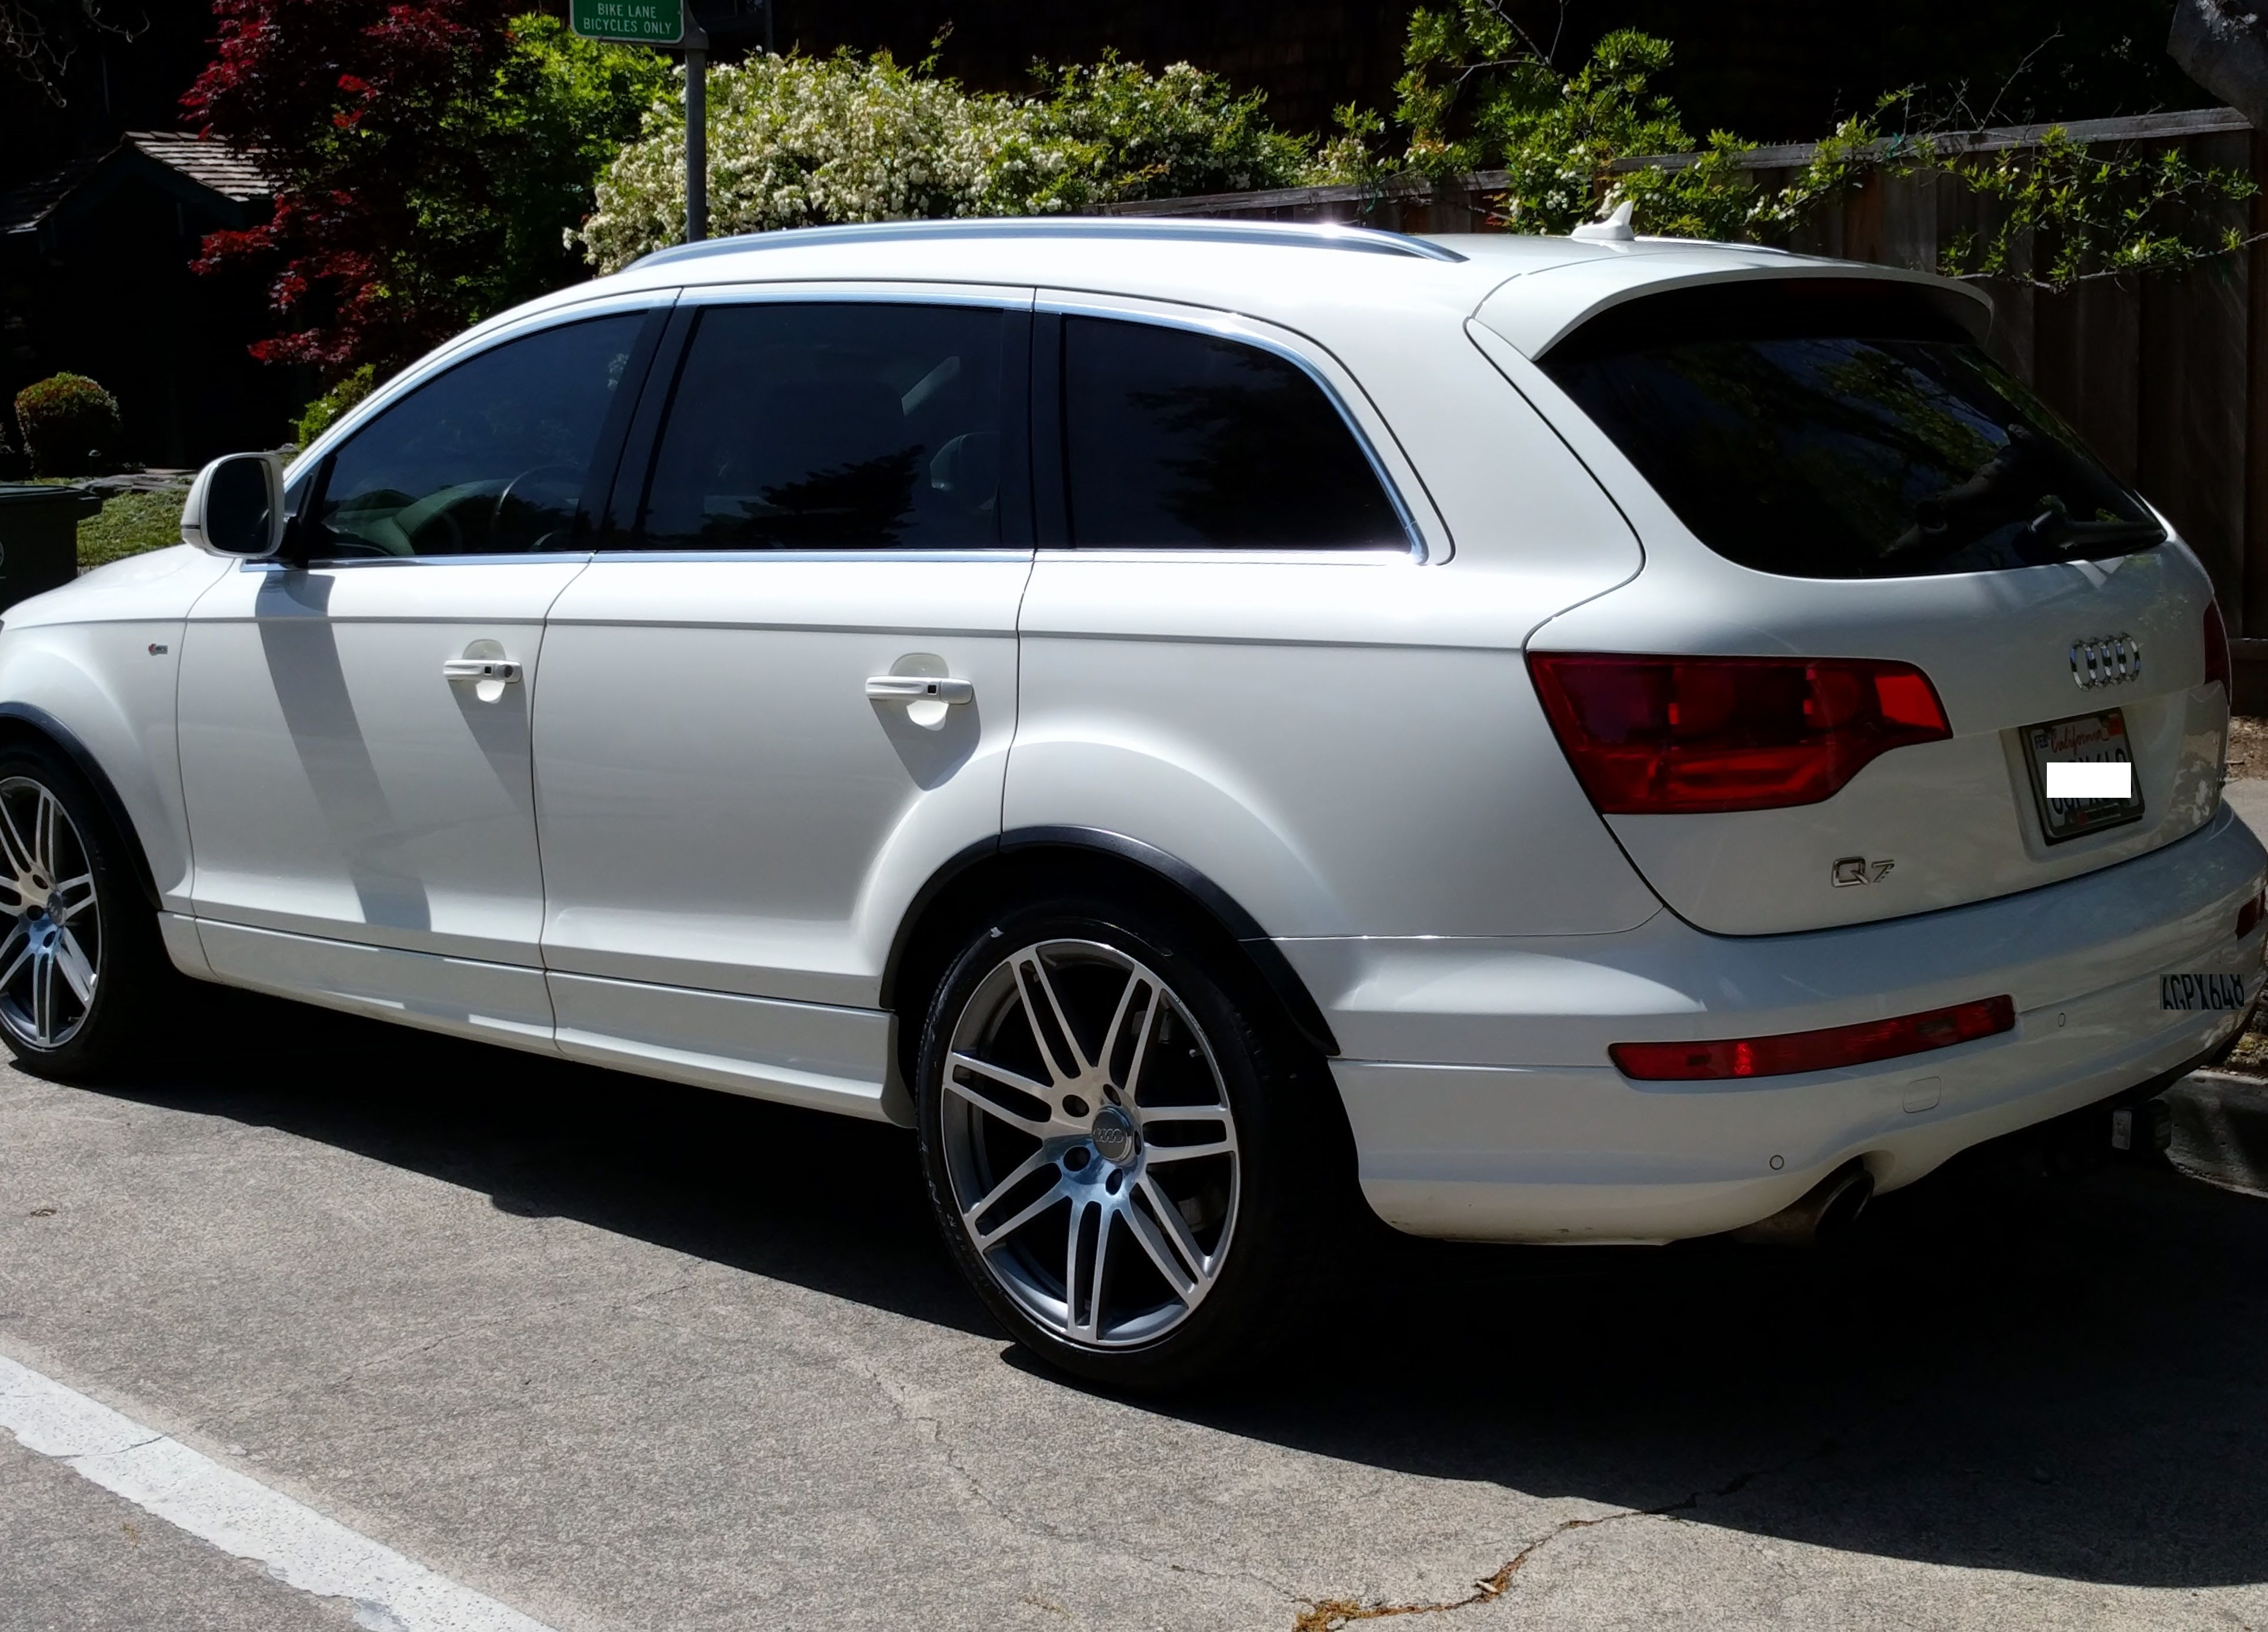 audi q7 2009 audi q7 4 2 prestige s line audiworld forums q7 pinterest audi audi q7 and. Black Bedroom Furniture Sets. Home Design Ideas